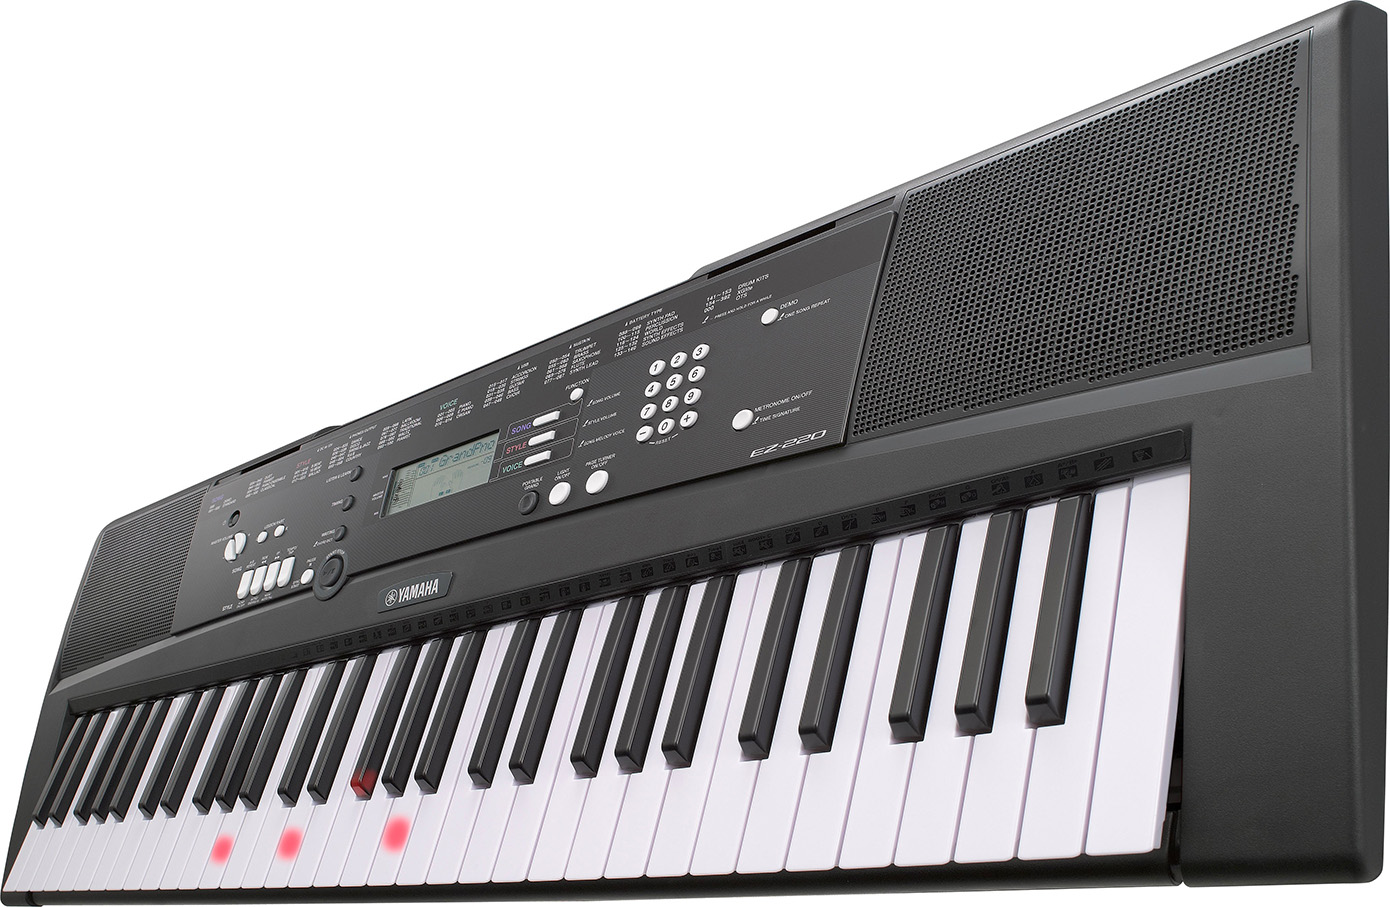 Yamaha digitalt keyboard EZ 220 DJ utstyr og